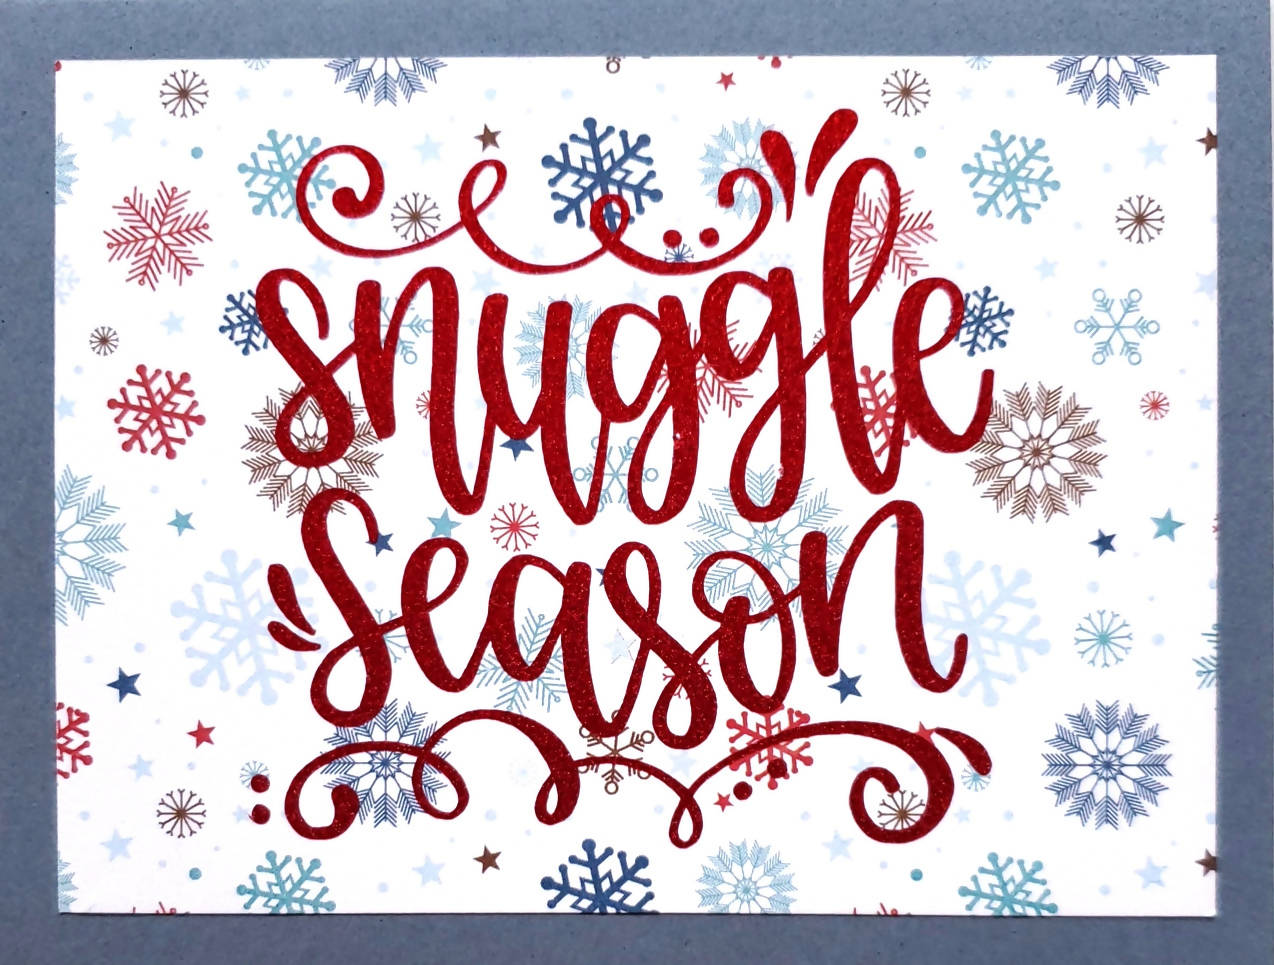 Snuggle Season (2 Styles Available)